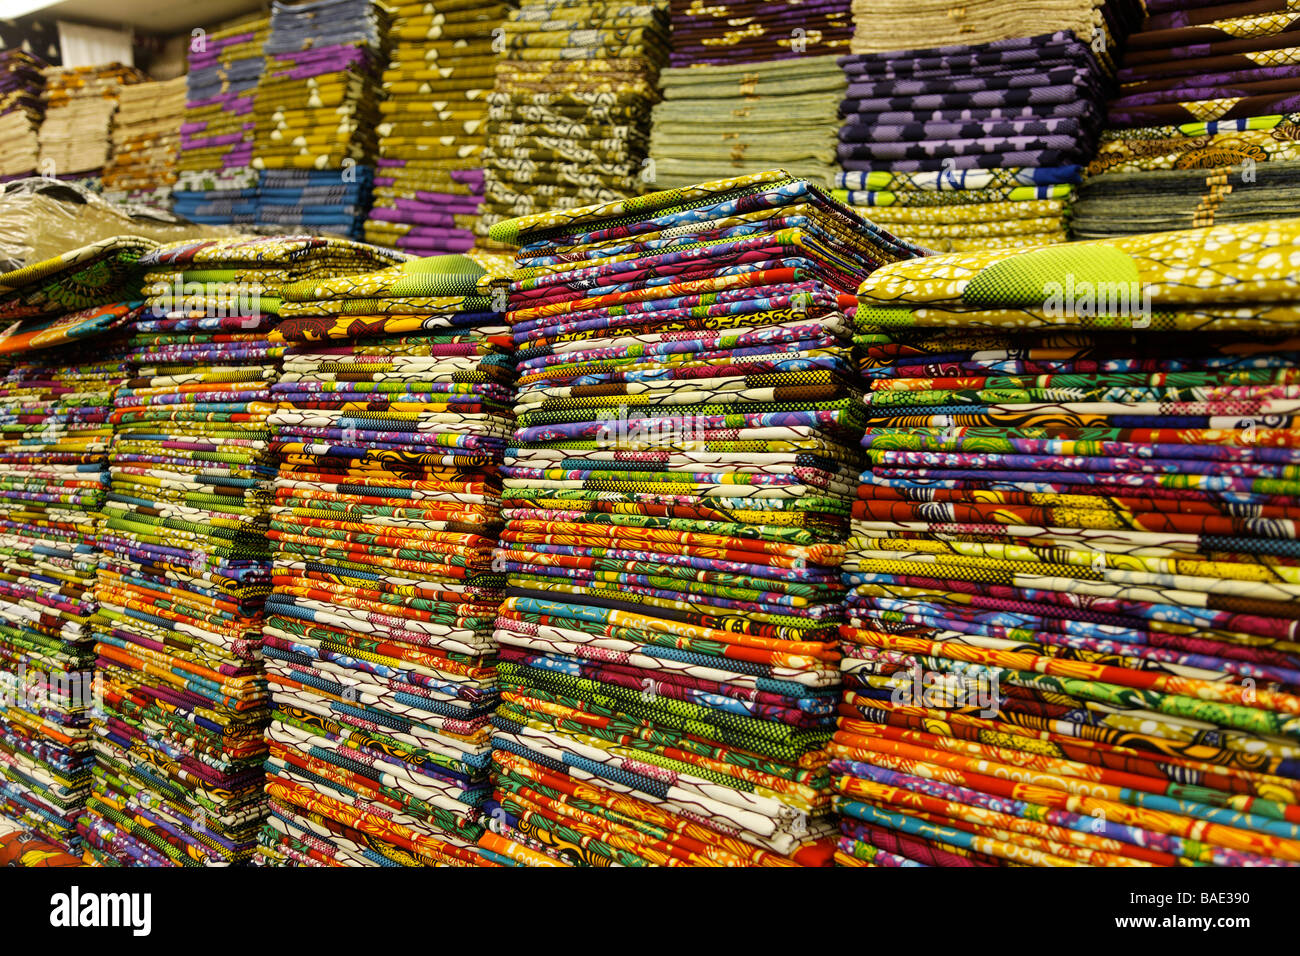 African textiles fabric piled in shop - Stock Image